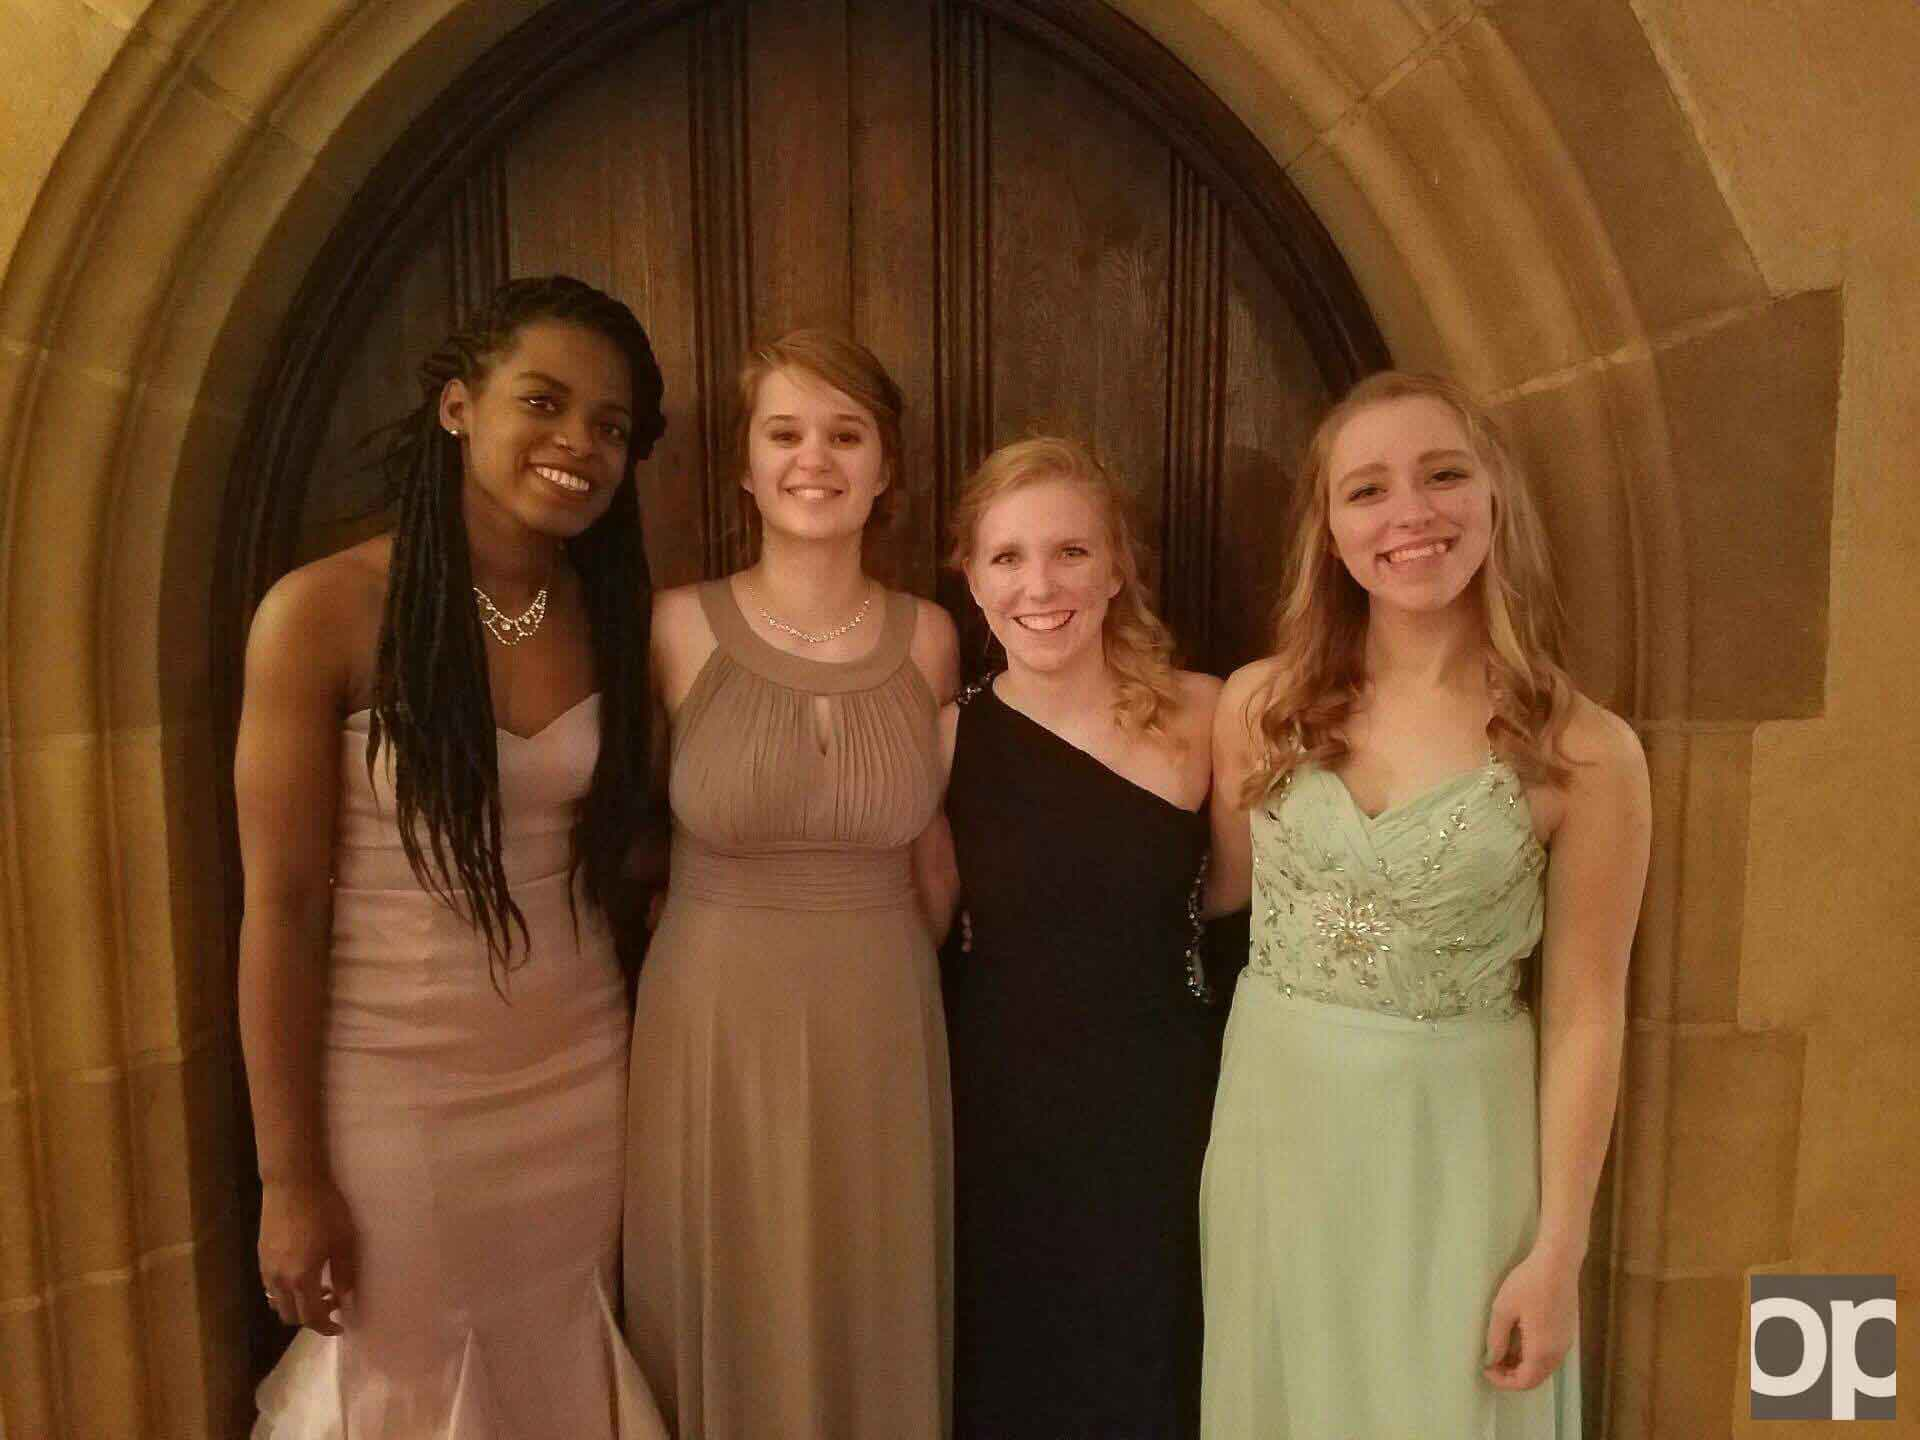 Left to right: Brie Shines, Shelby Tankersley, Phoebe Wojciechowski and Lani Hennings attended the 43rd annual Meadow Brook Ball on Saturday, Jan. 28 at the Meadow Brook Hall.